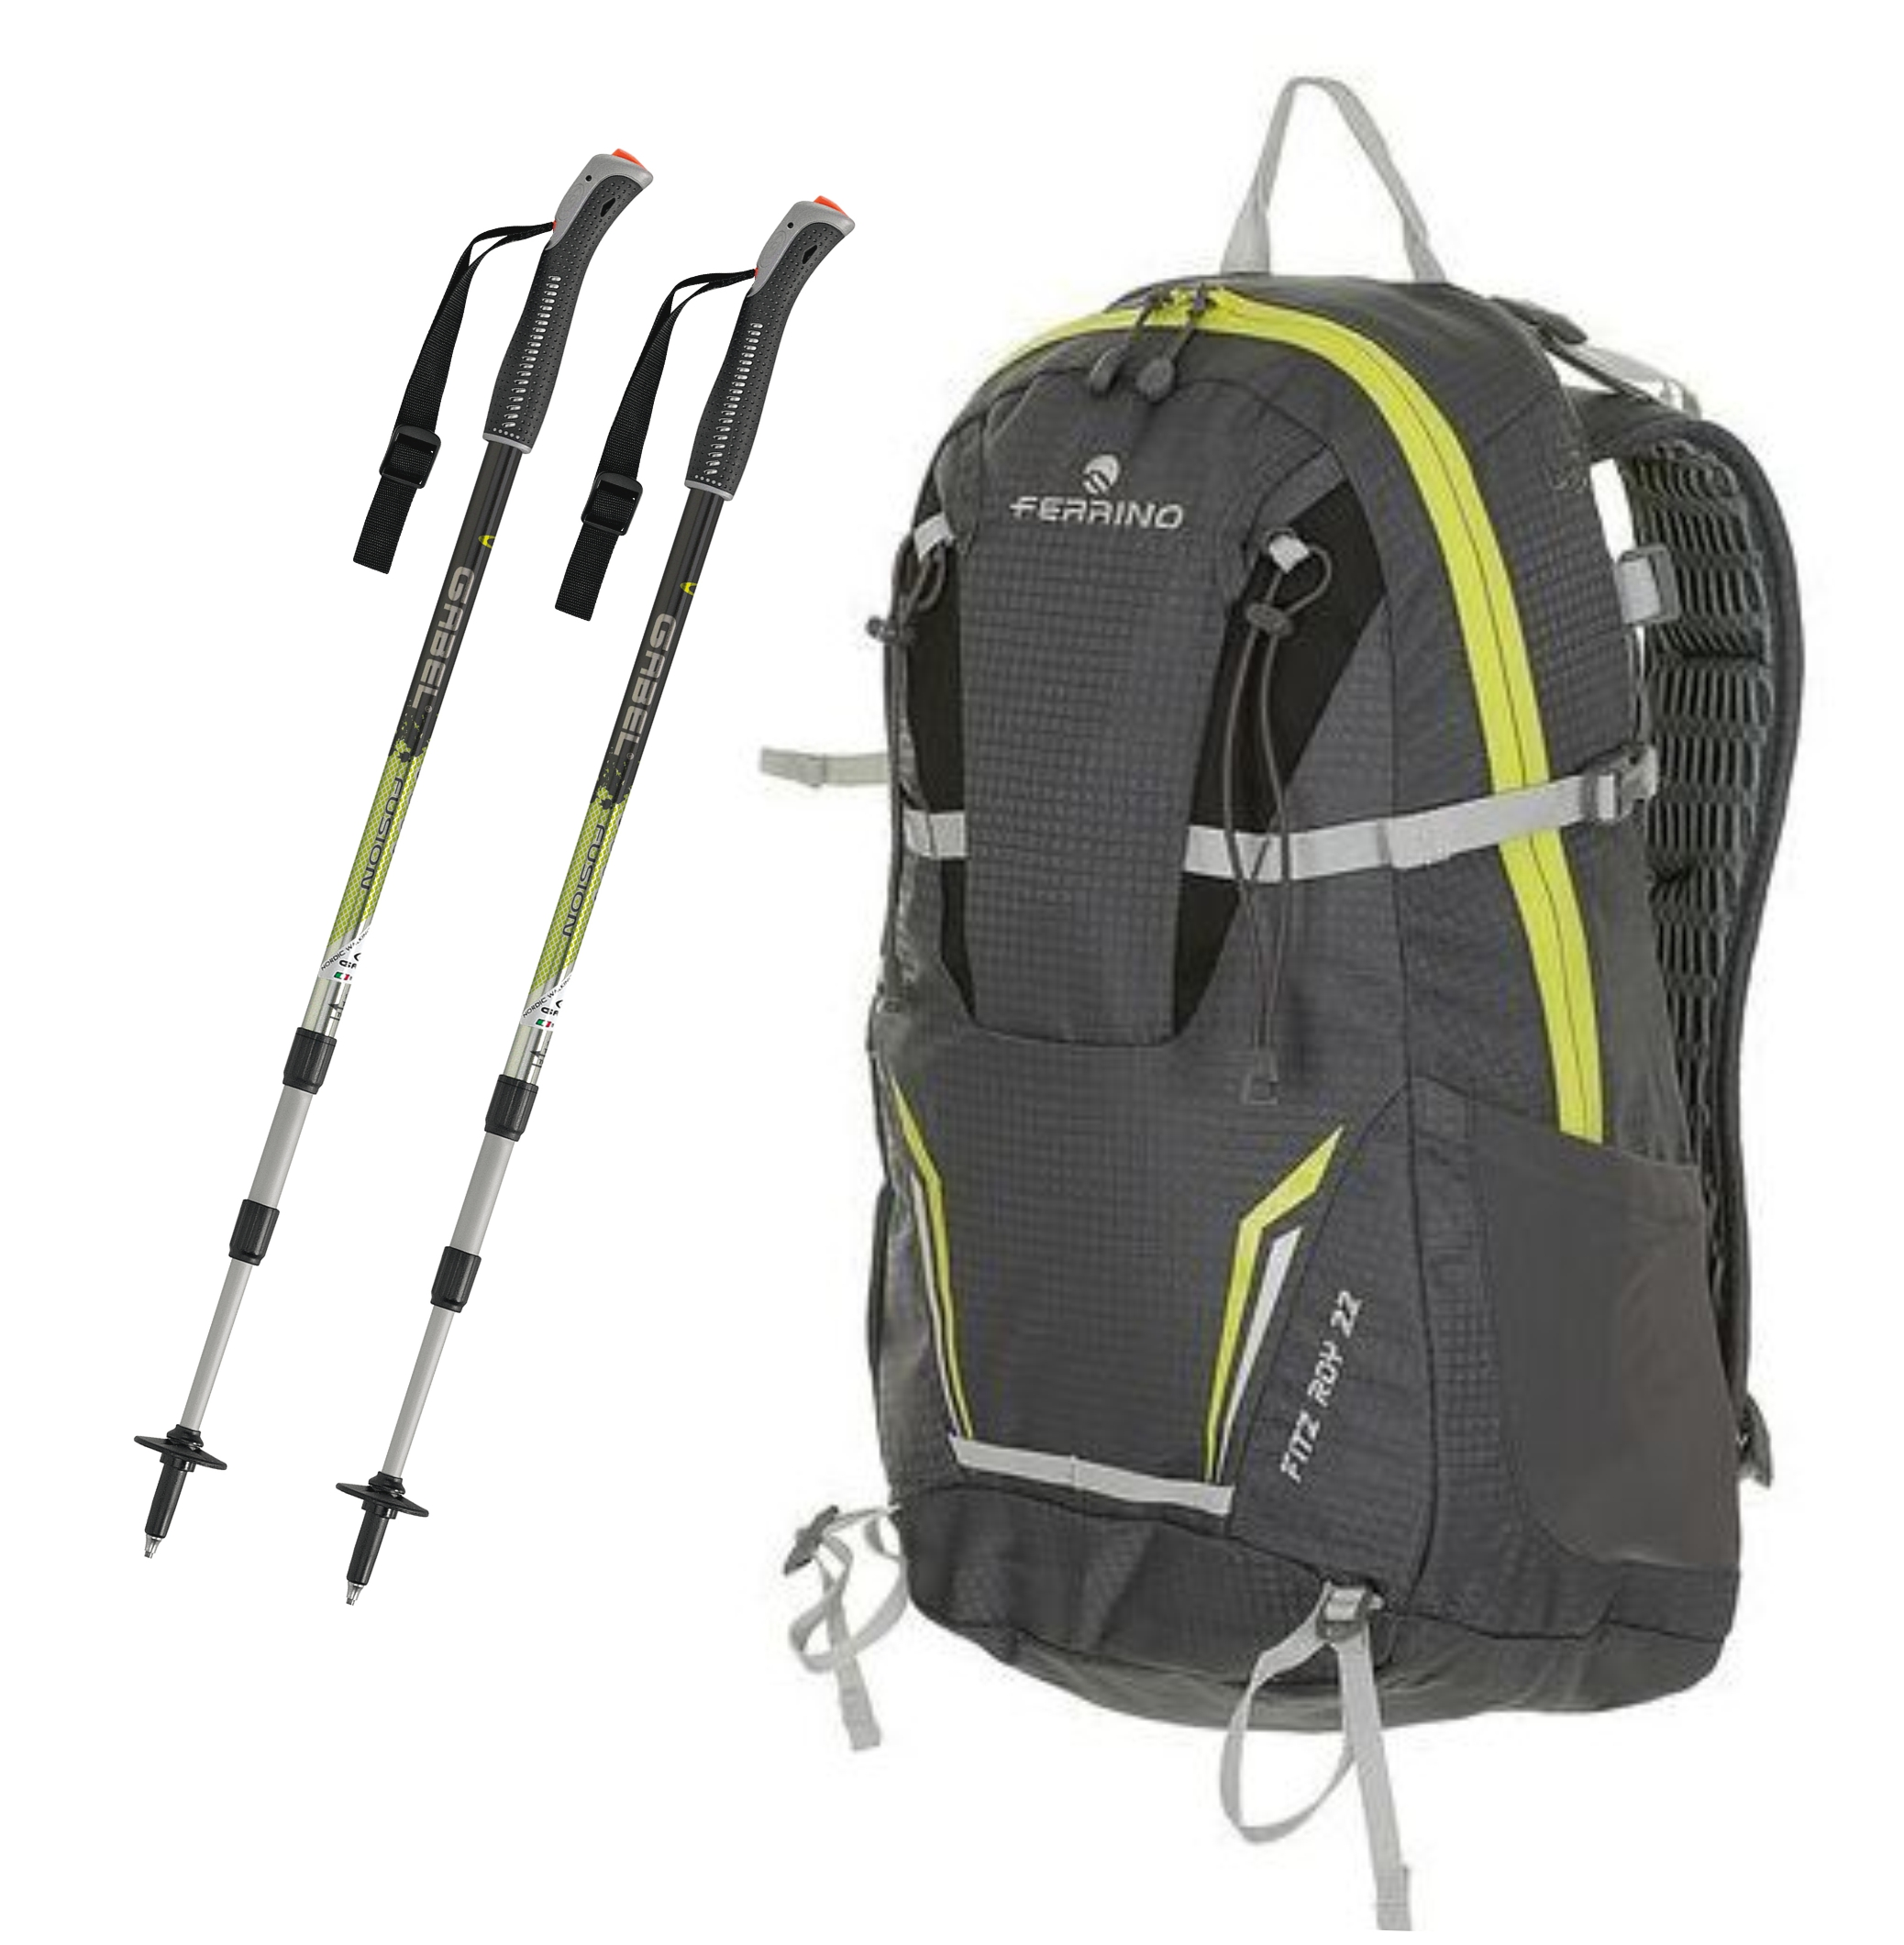 Kije gabel fusion nordic walking